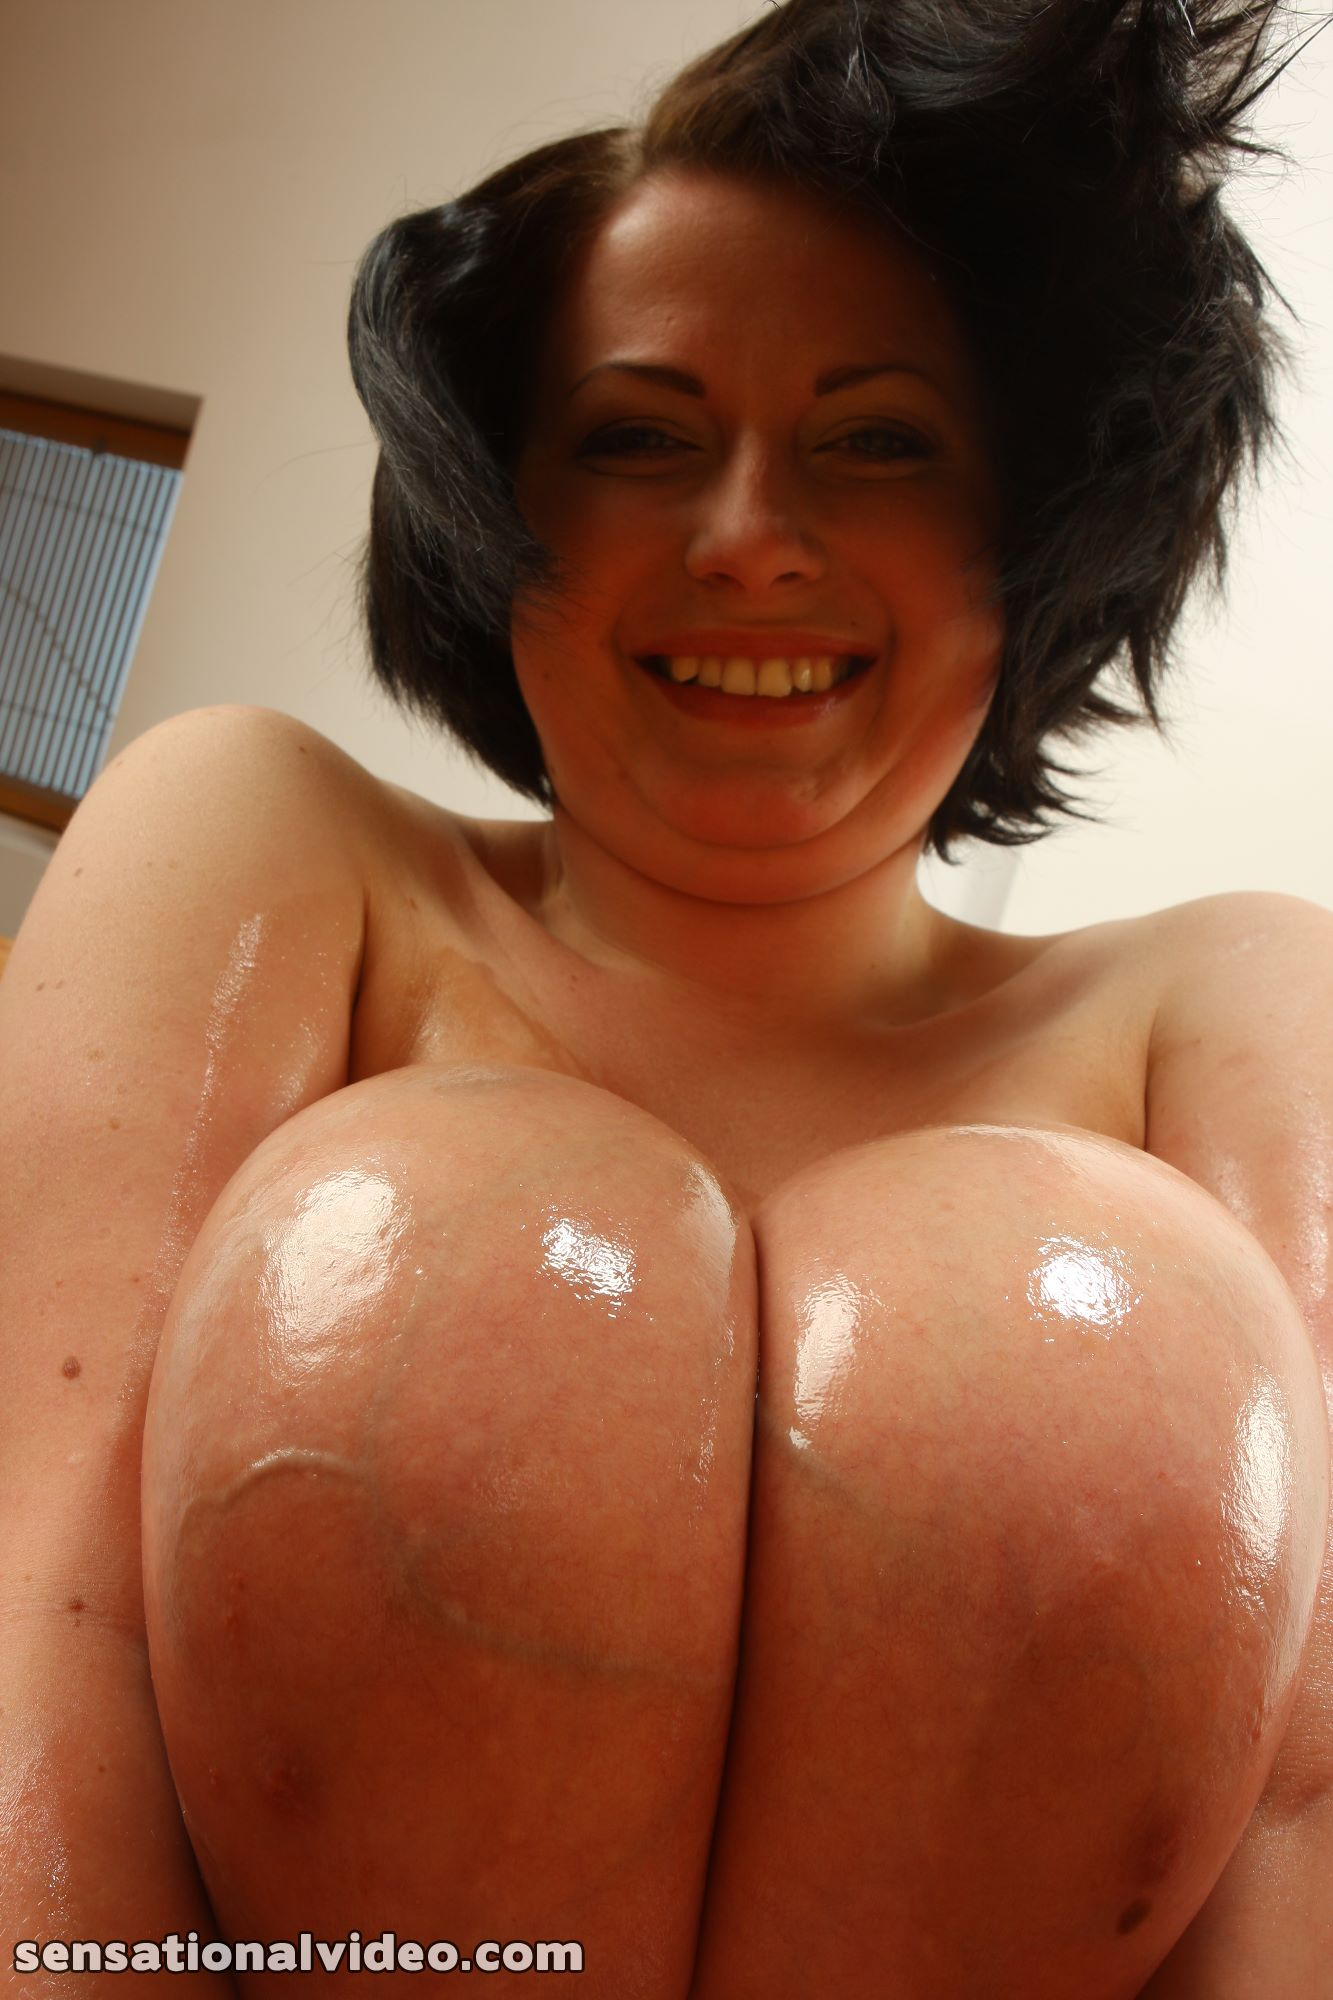 lesgalls spicytitties plumperpass gal535 pic 30